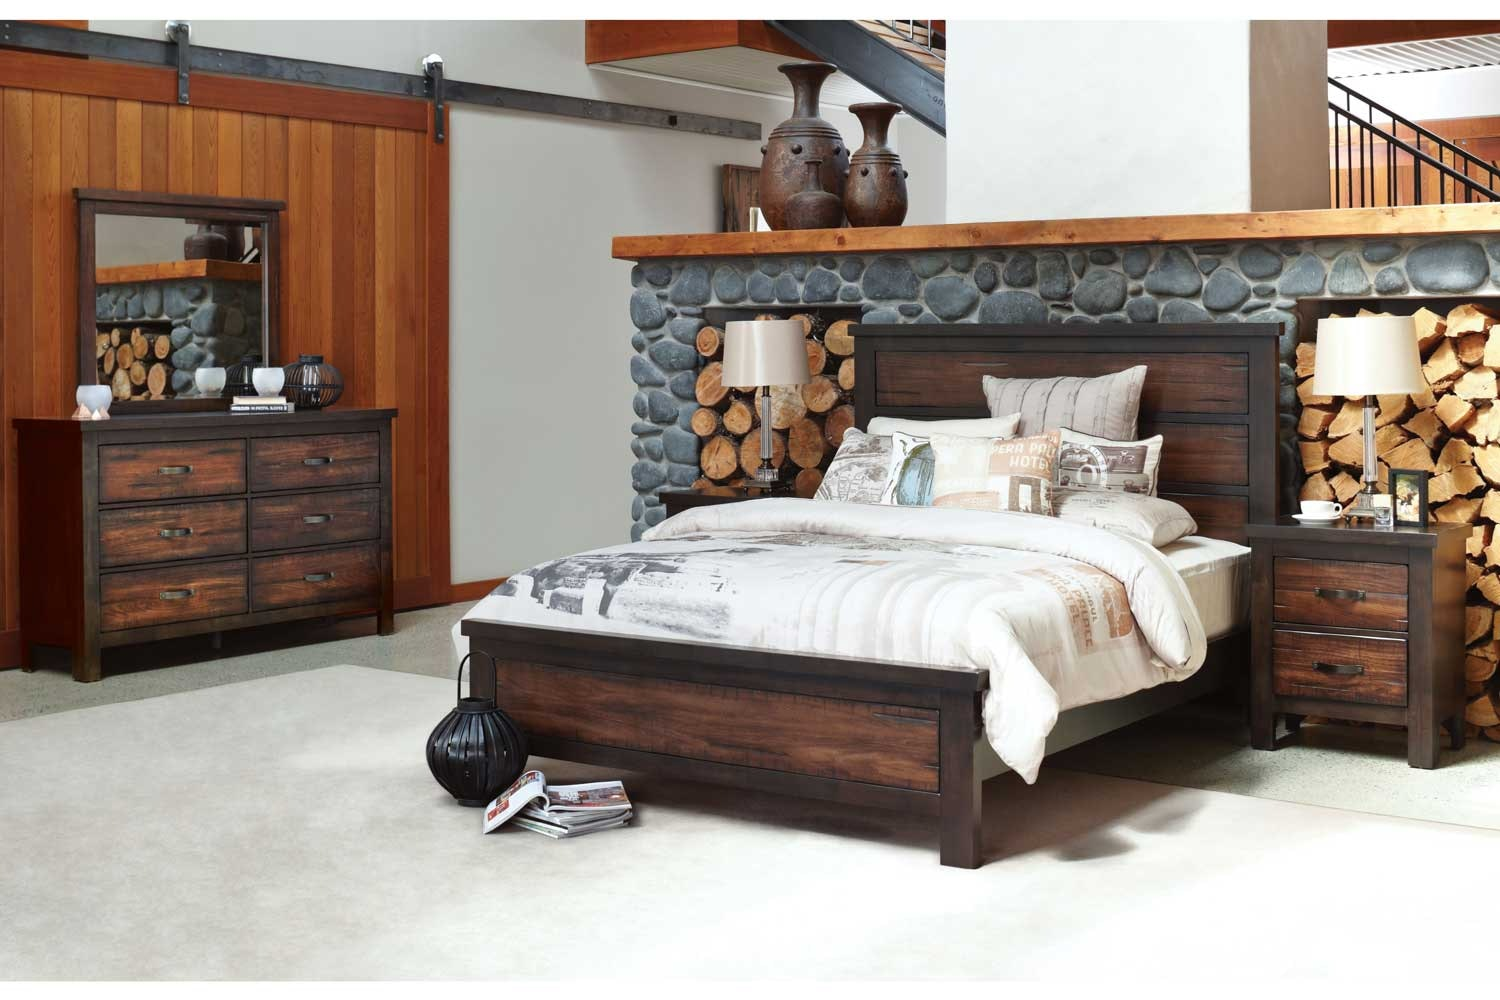 Anchorage Bedroom Furniture by Stoke Furniture